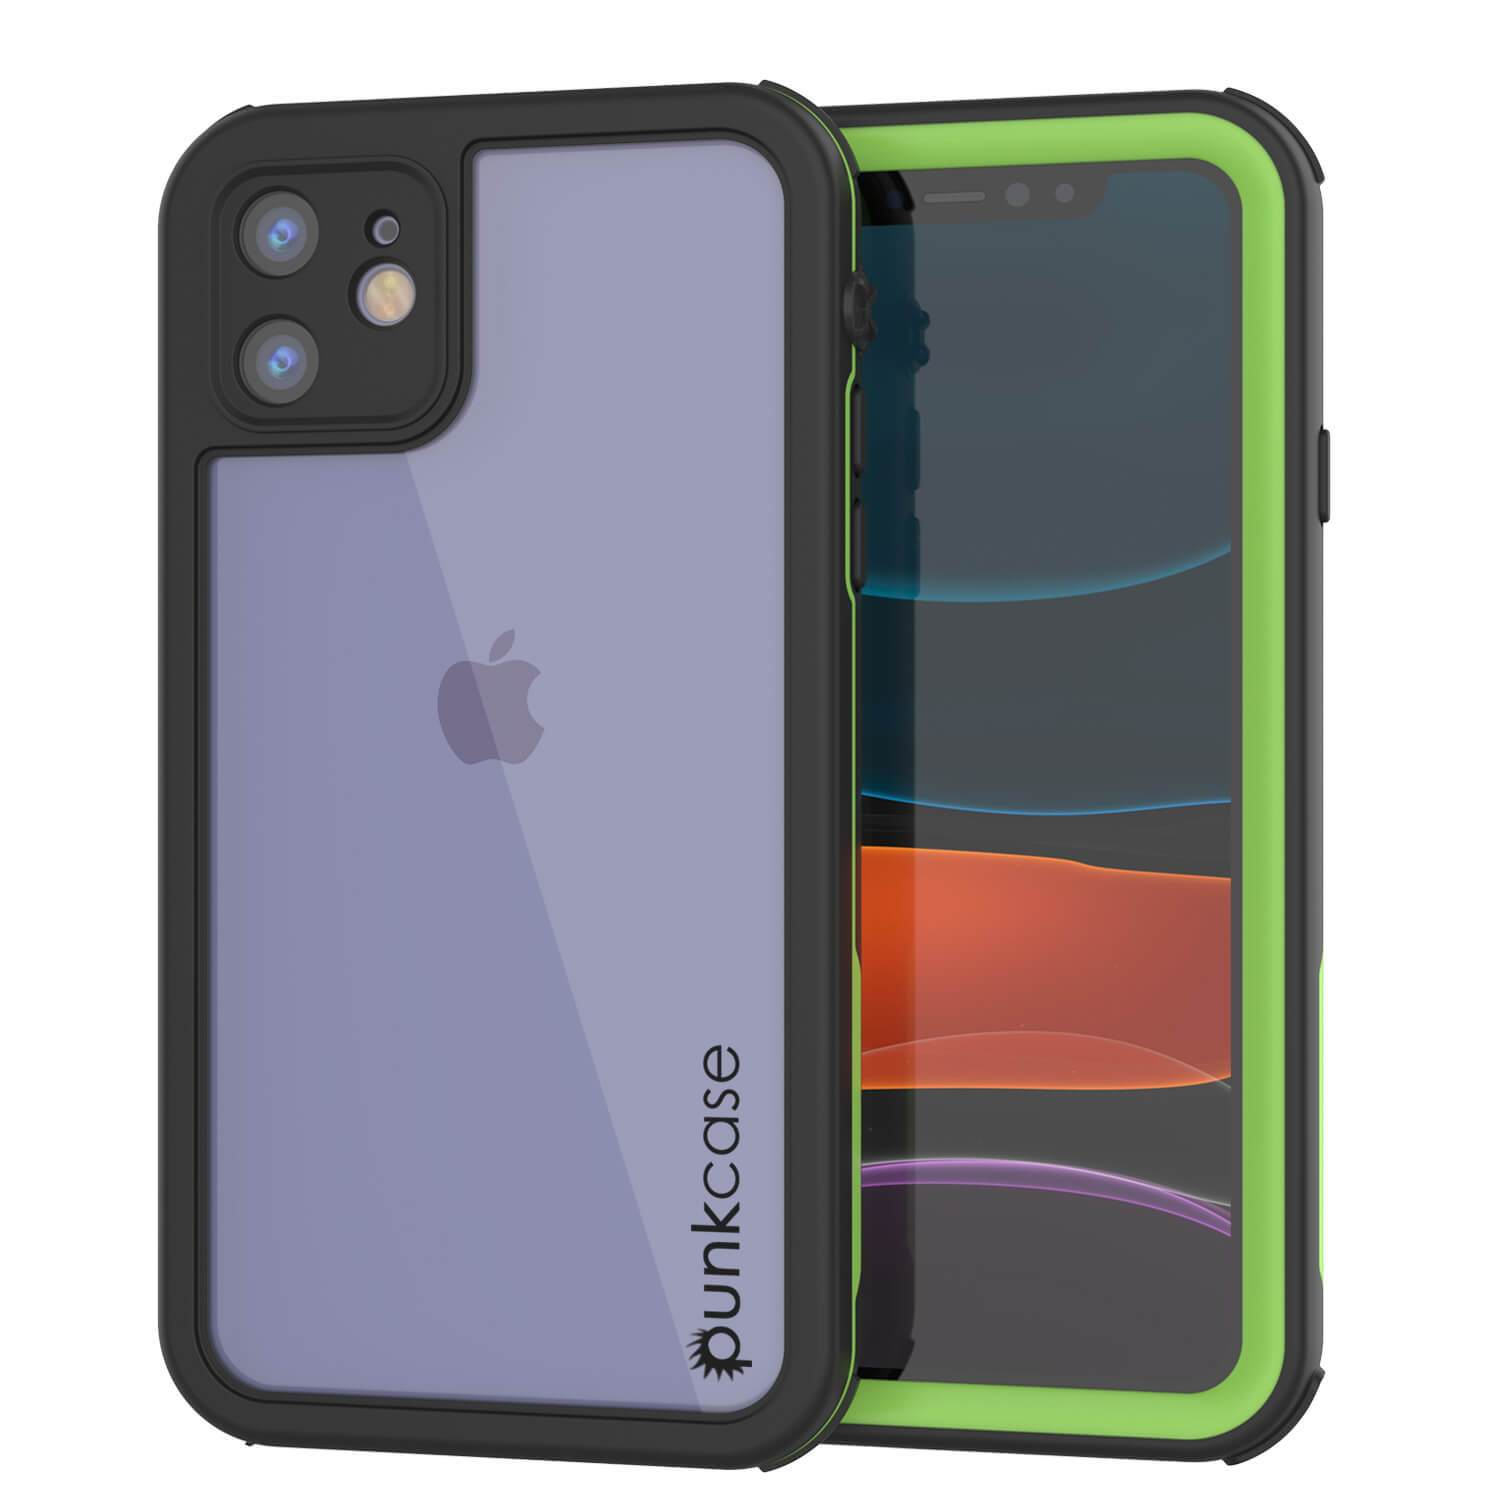 iPhone 8+ Plus Waterproof IP68 Case, Punkcase [Green] [Rapture Series]  W/Built in Screen Protector